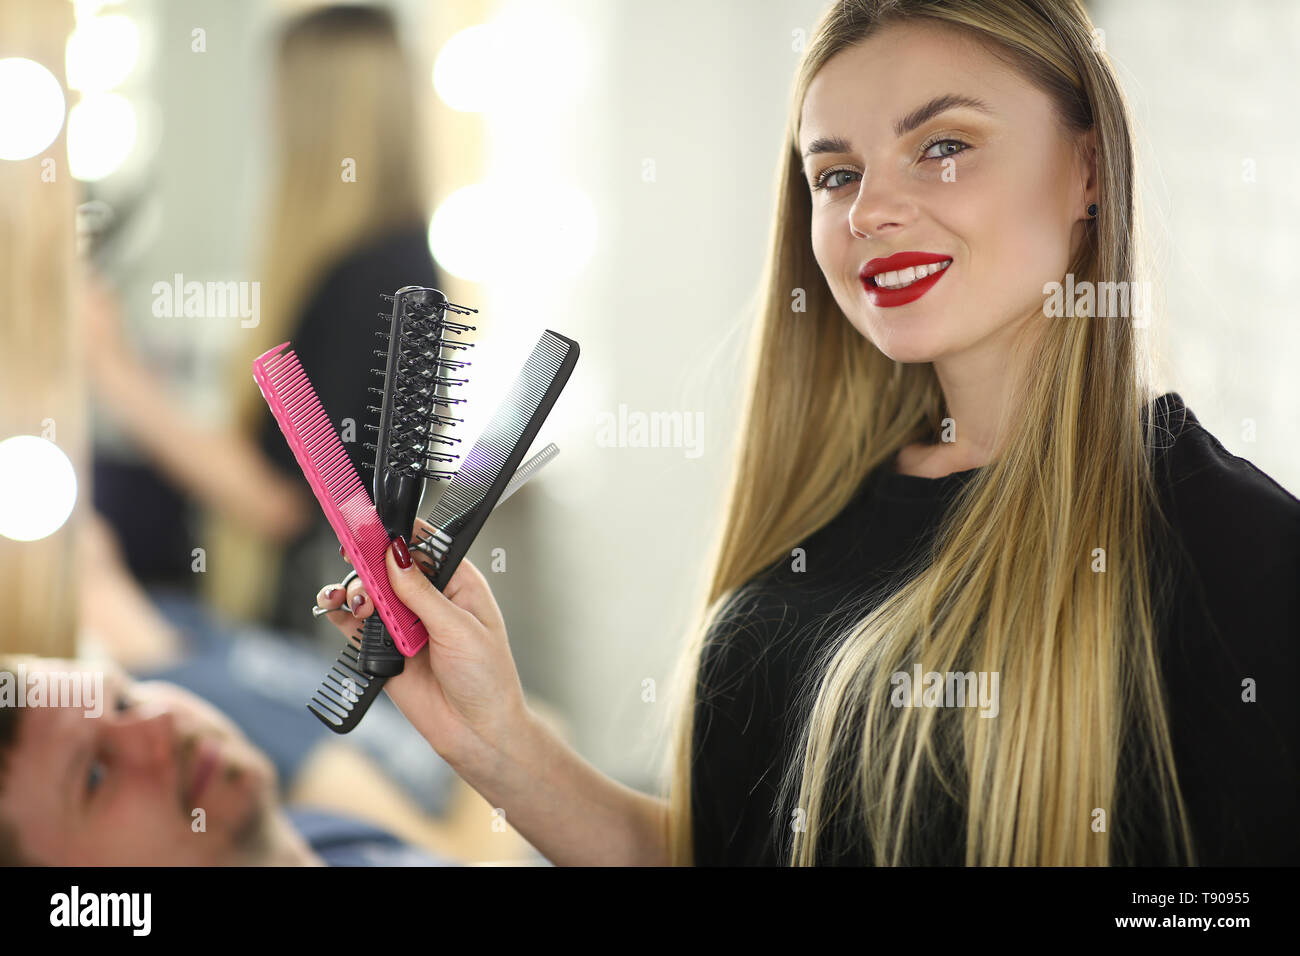 Professional Female Hairstylist with Hairbrush - Stock Image